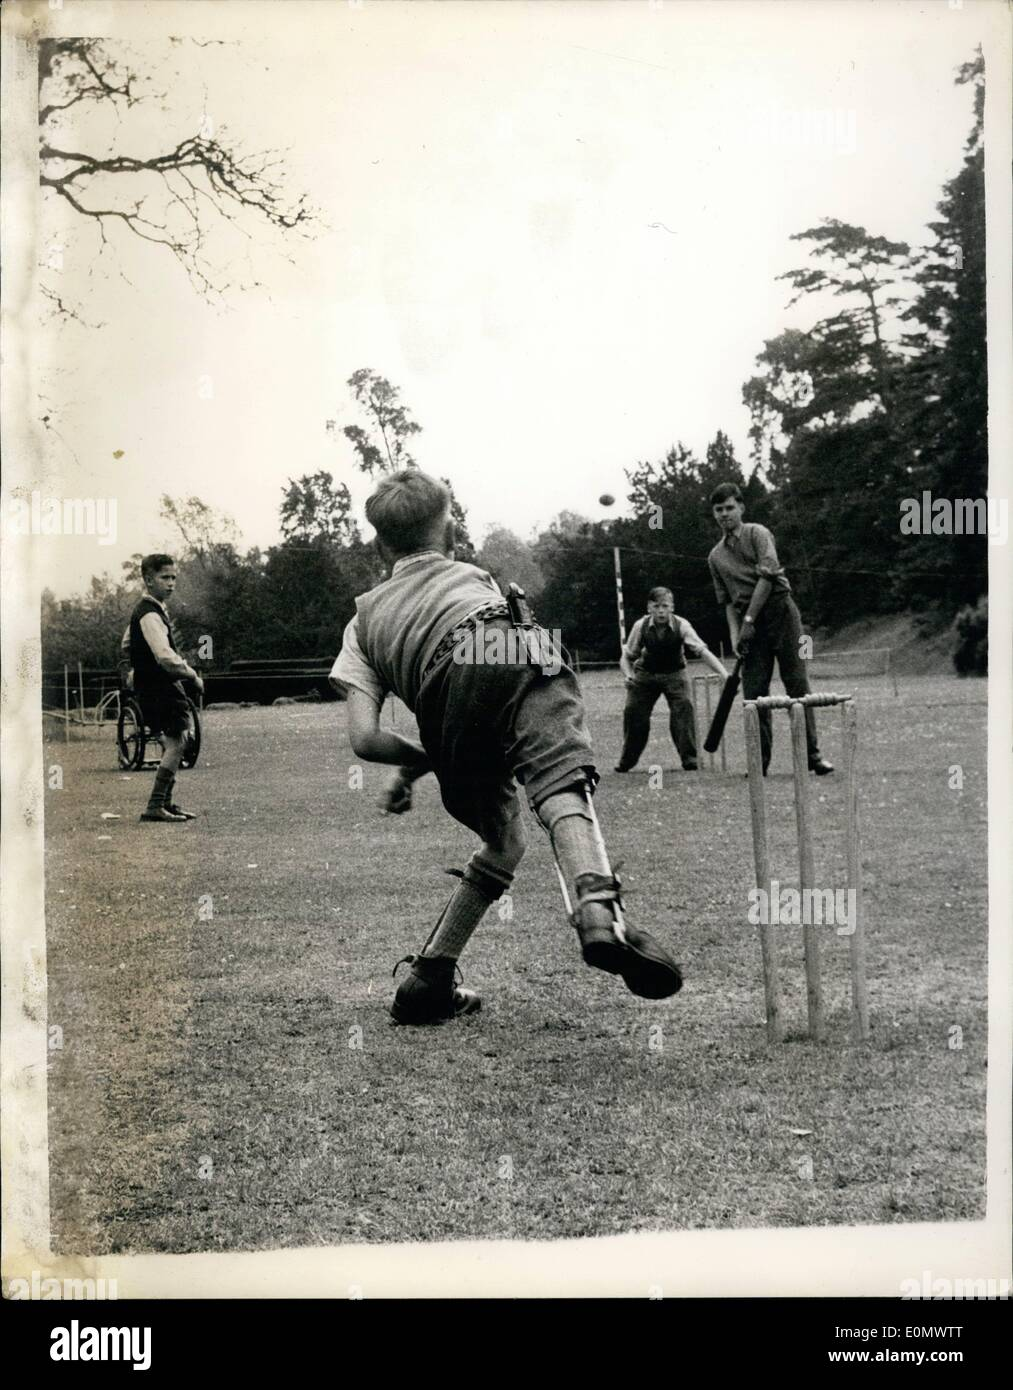 Jul. 07, 1956 - Cricket - from wheel chairs and crutches.: Every fine afternoon the lawns of Hinwick Hall, Beds, - Stock Image